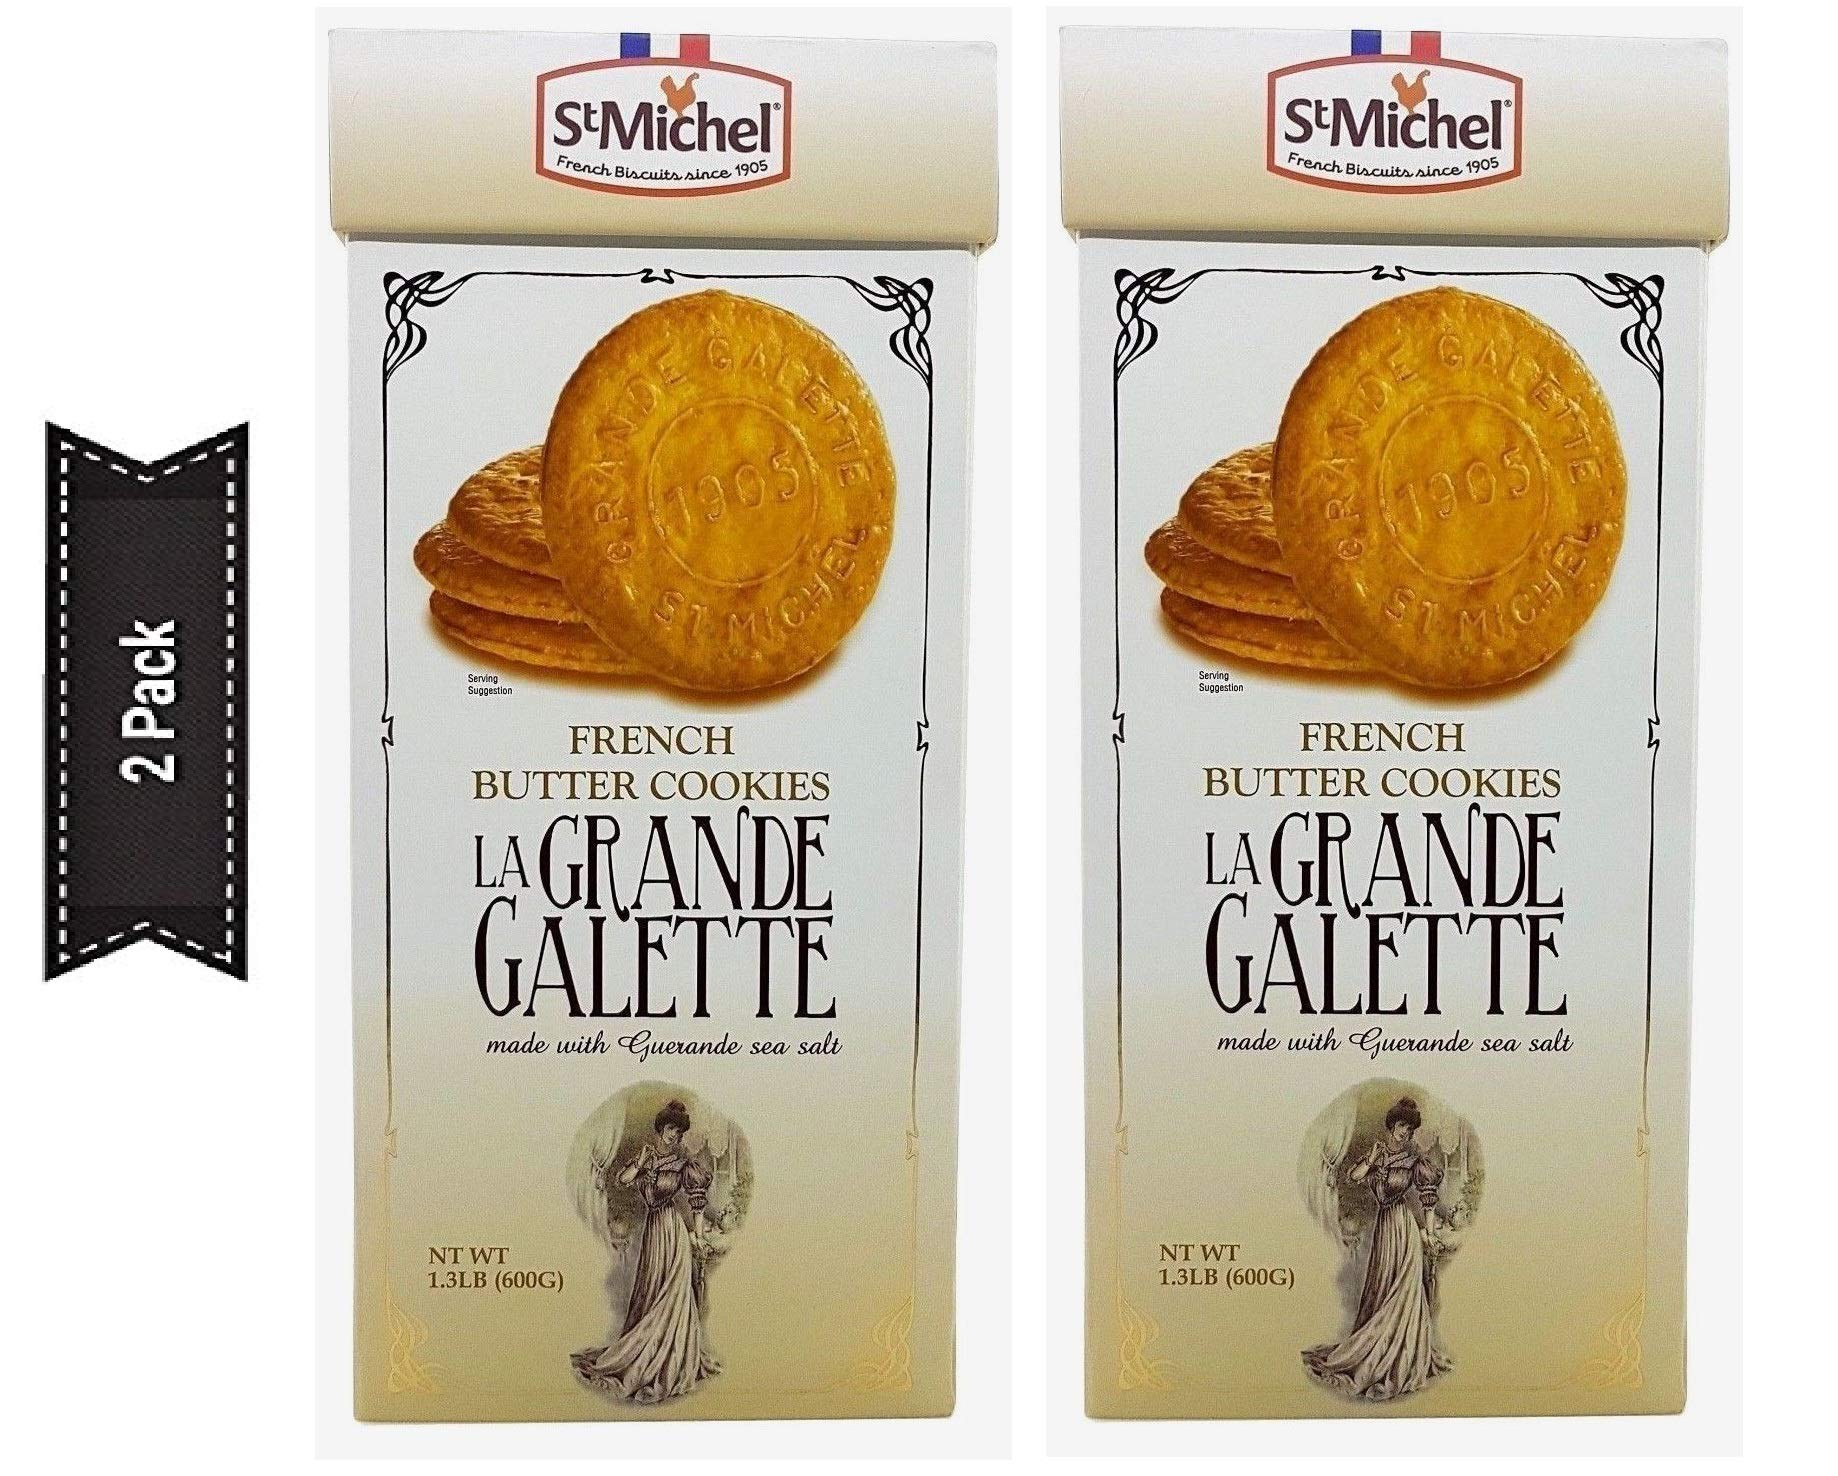 La Grande Galette French Butter Cookies - PACK OF 2 by LE CHEF PATISSIER (Image #1)